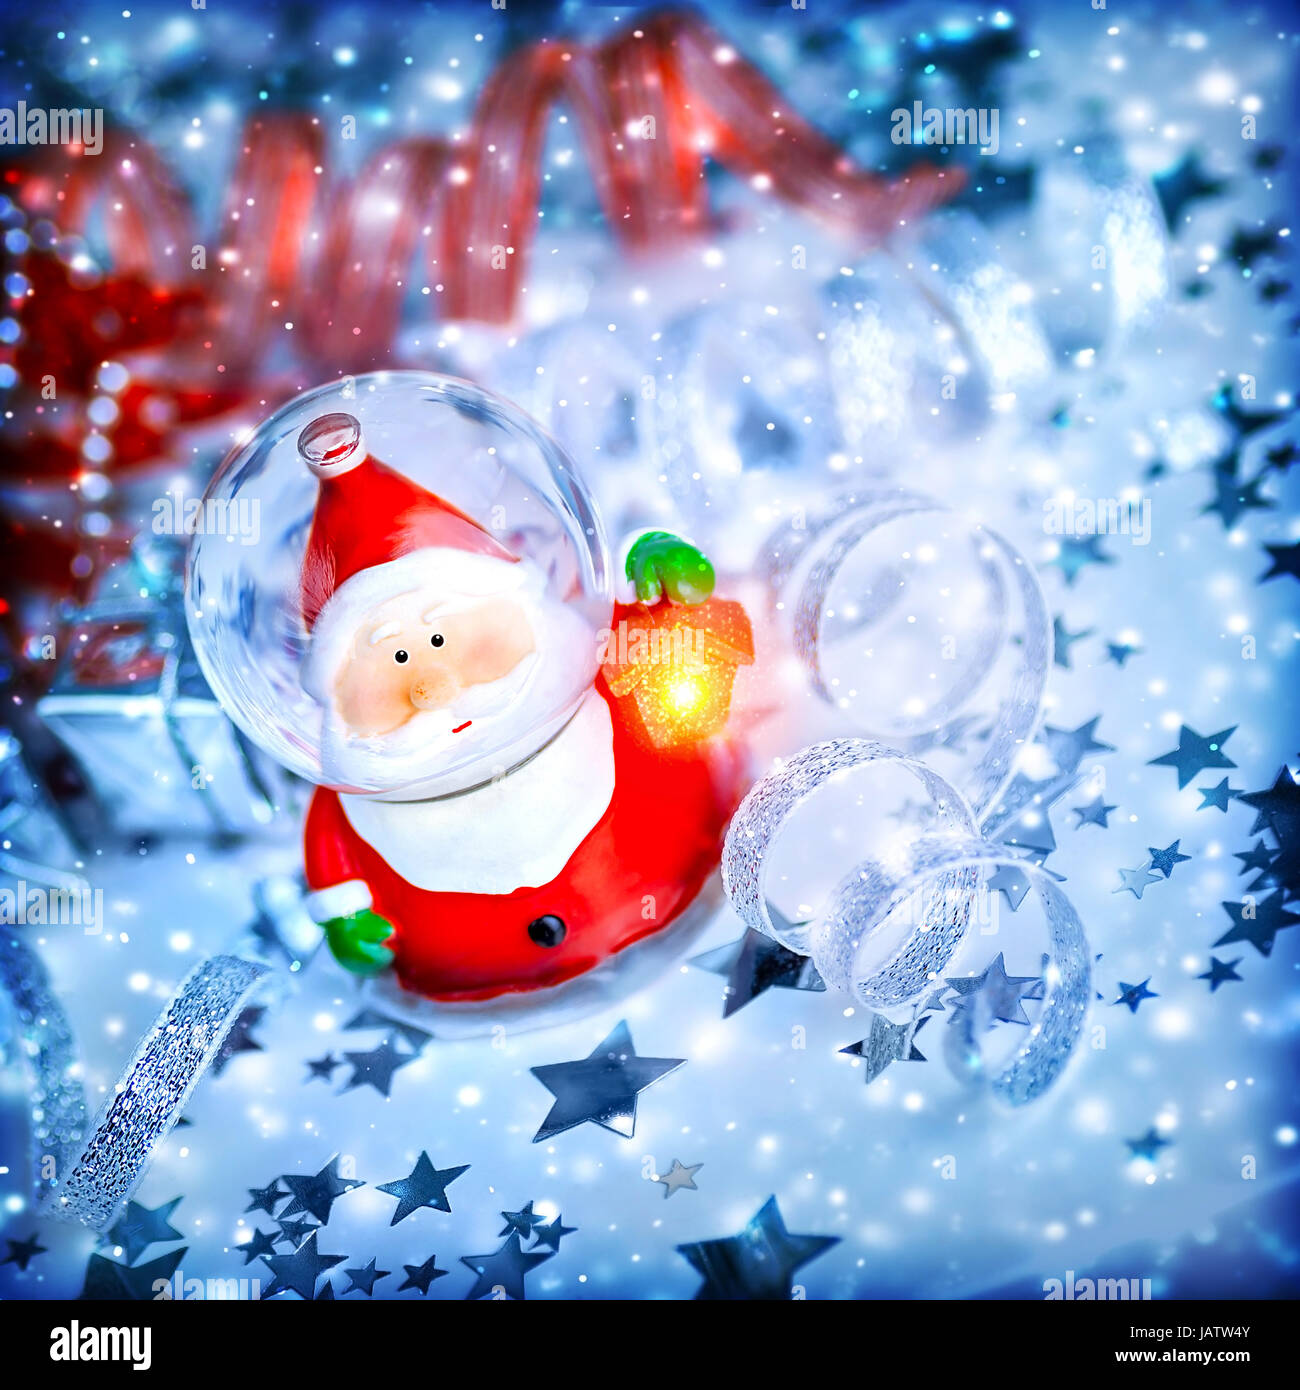 Blue christmas background with cute snow globe santa claus over blue christmas background with cute snow globe santa claus over stars magic of christmas eve and winter holidays m4hsunfo